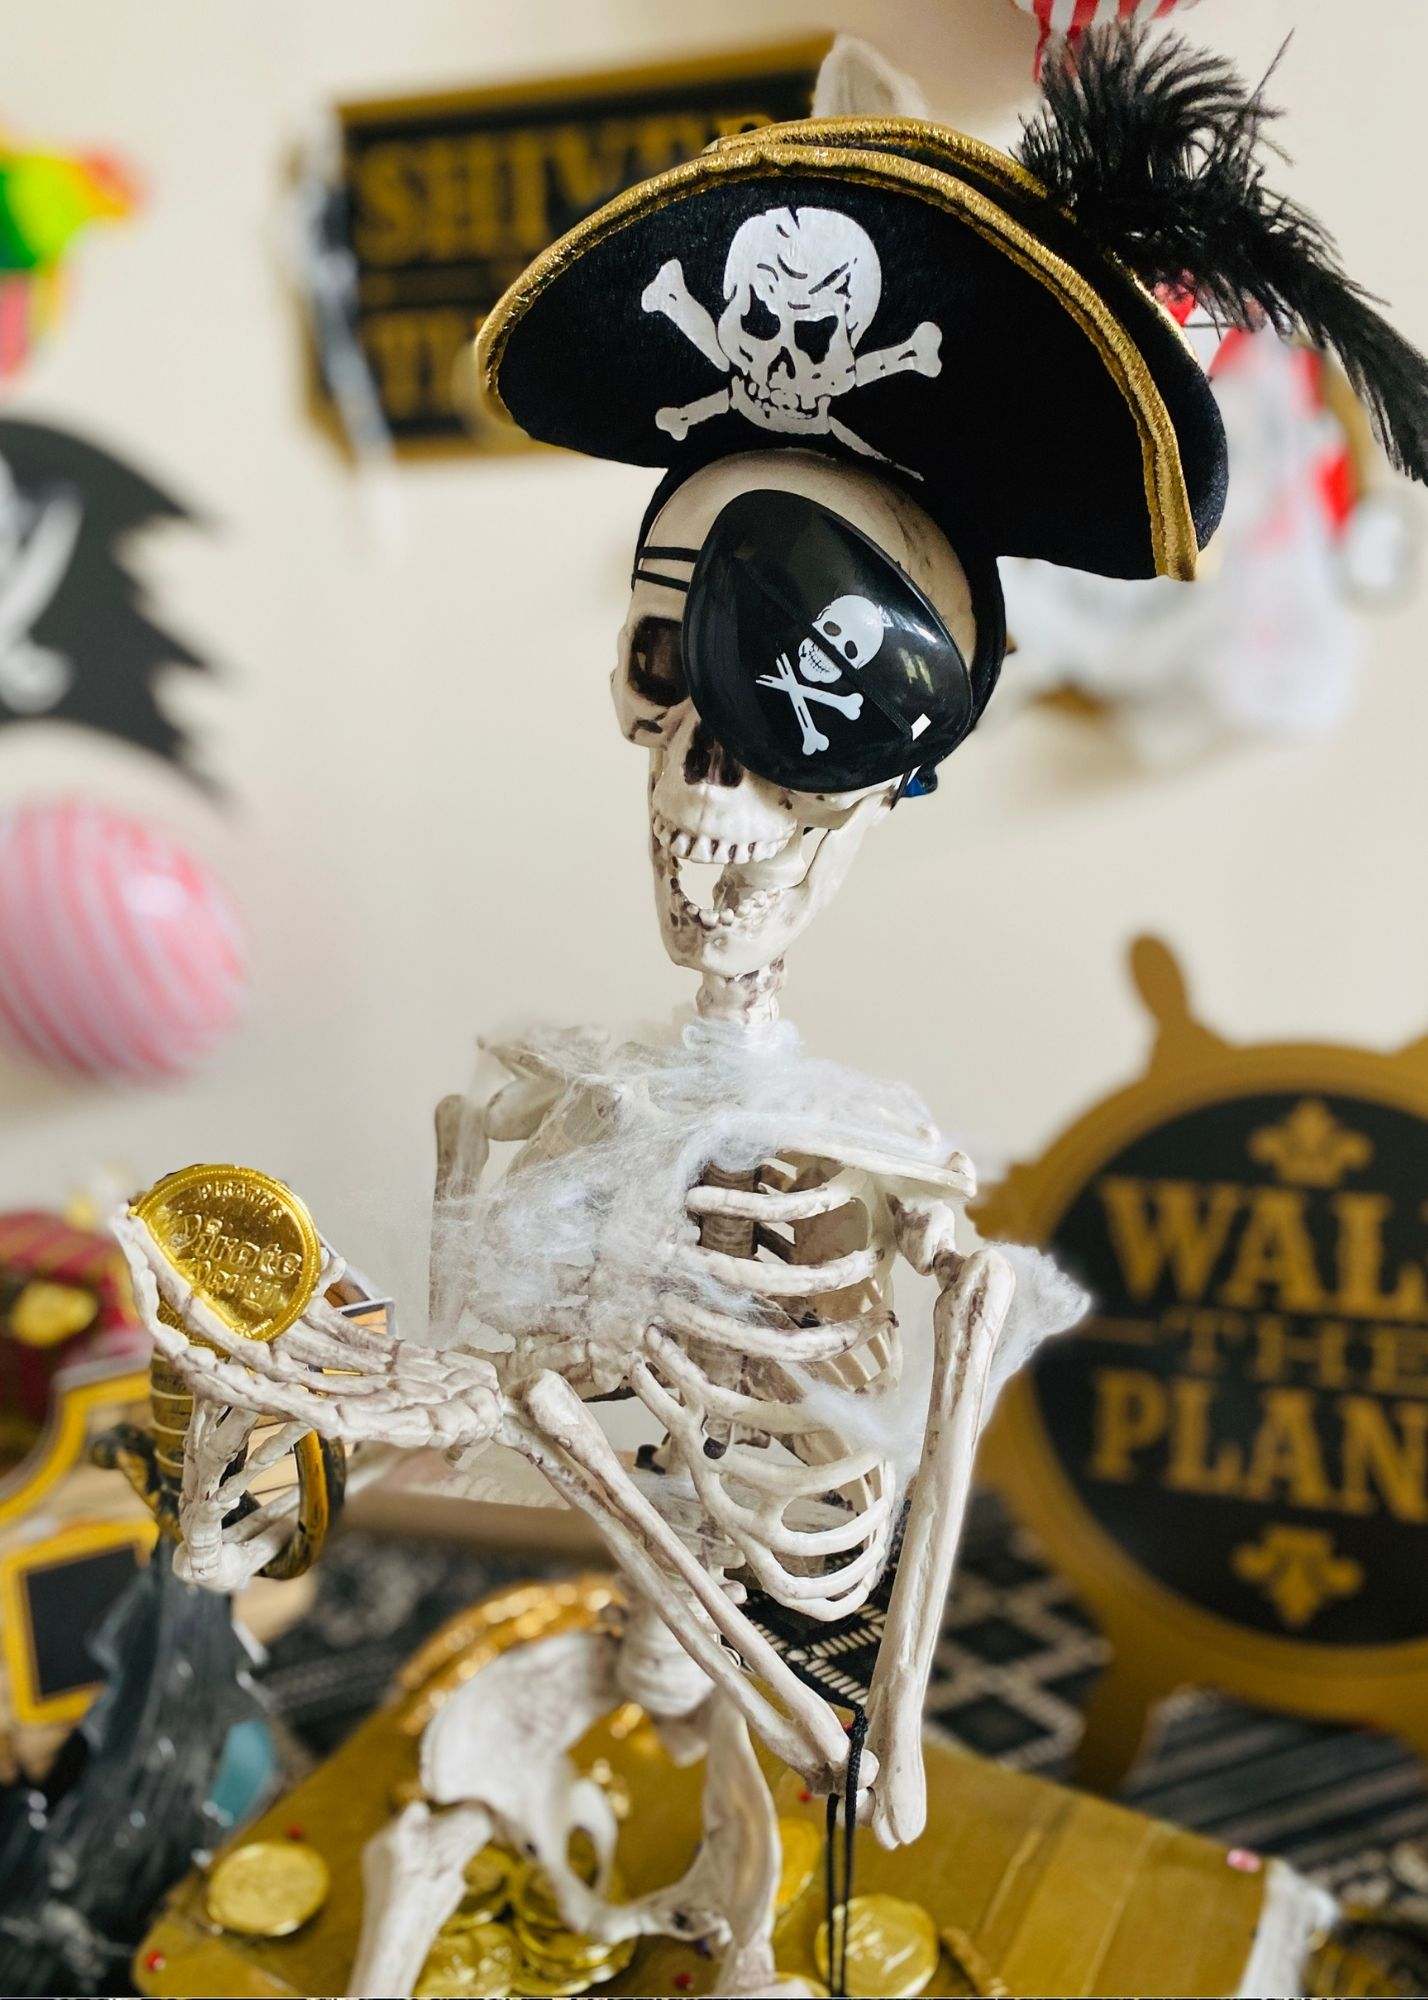 Skeleton in pirate outfit